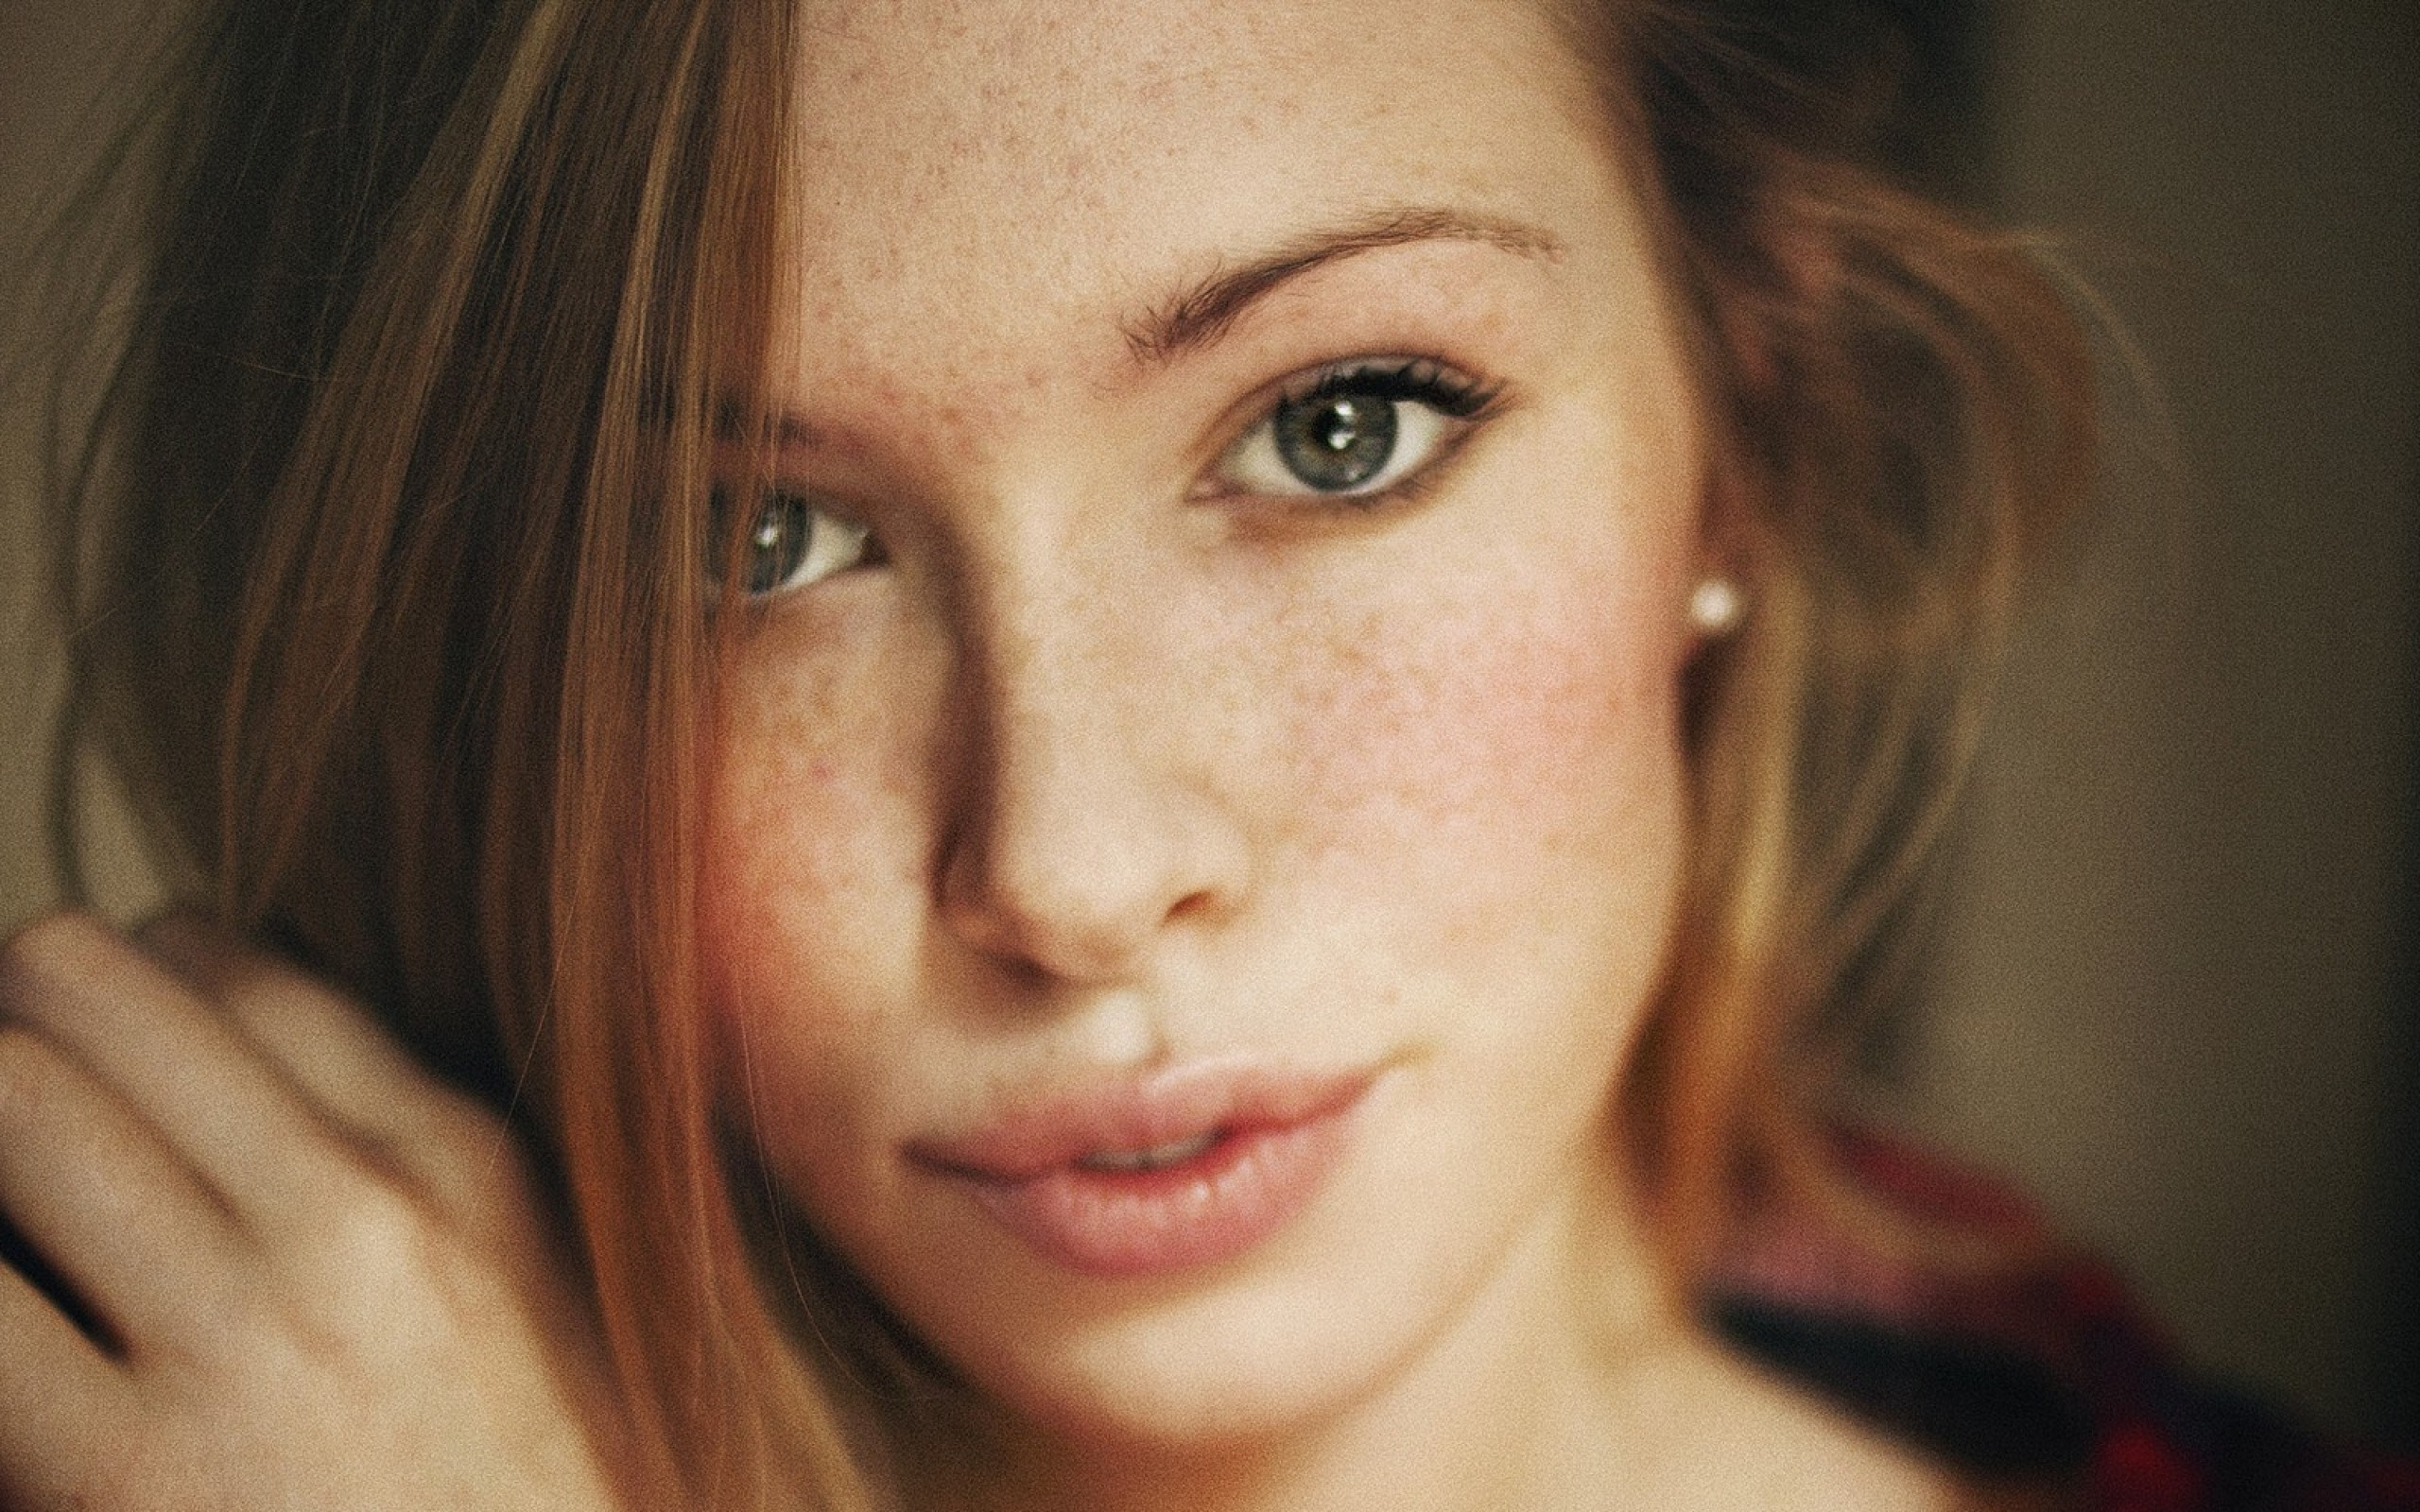 Girls With Freckles Wallpaper